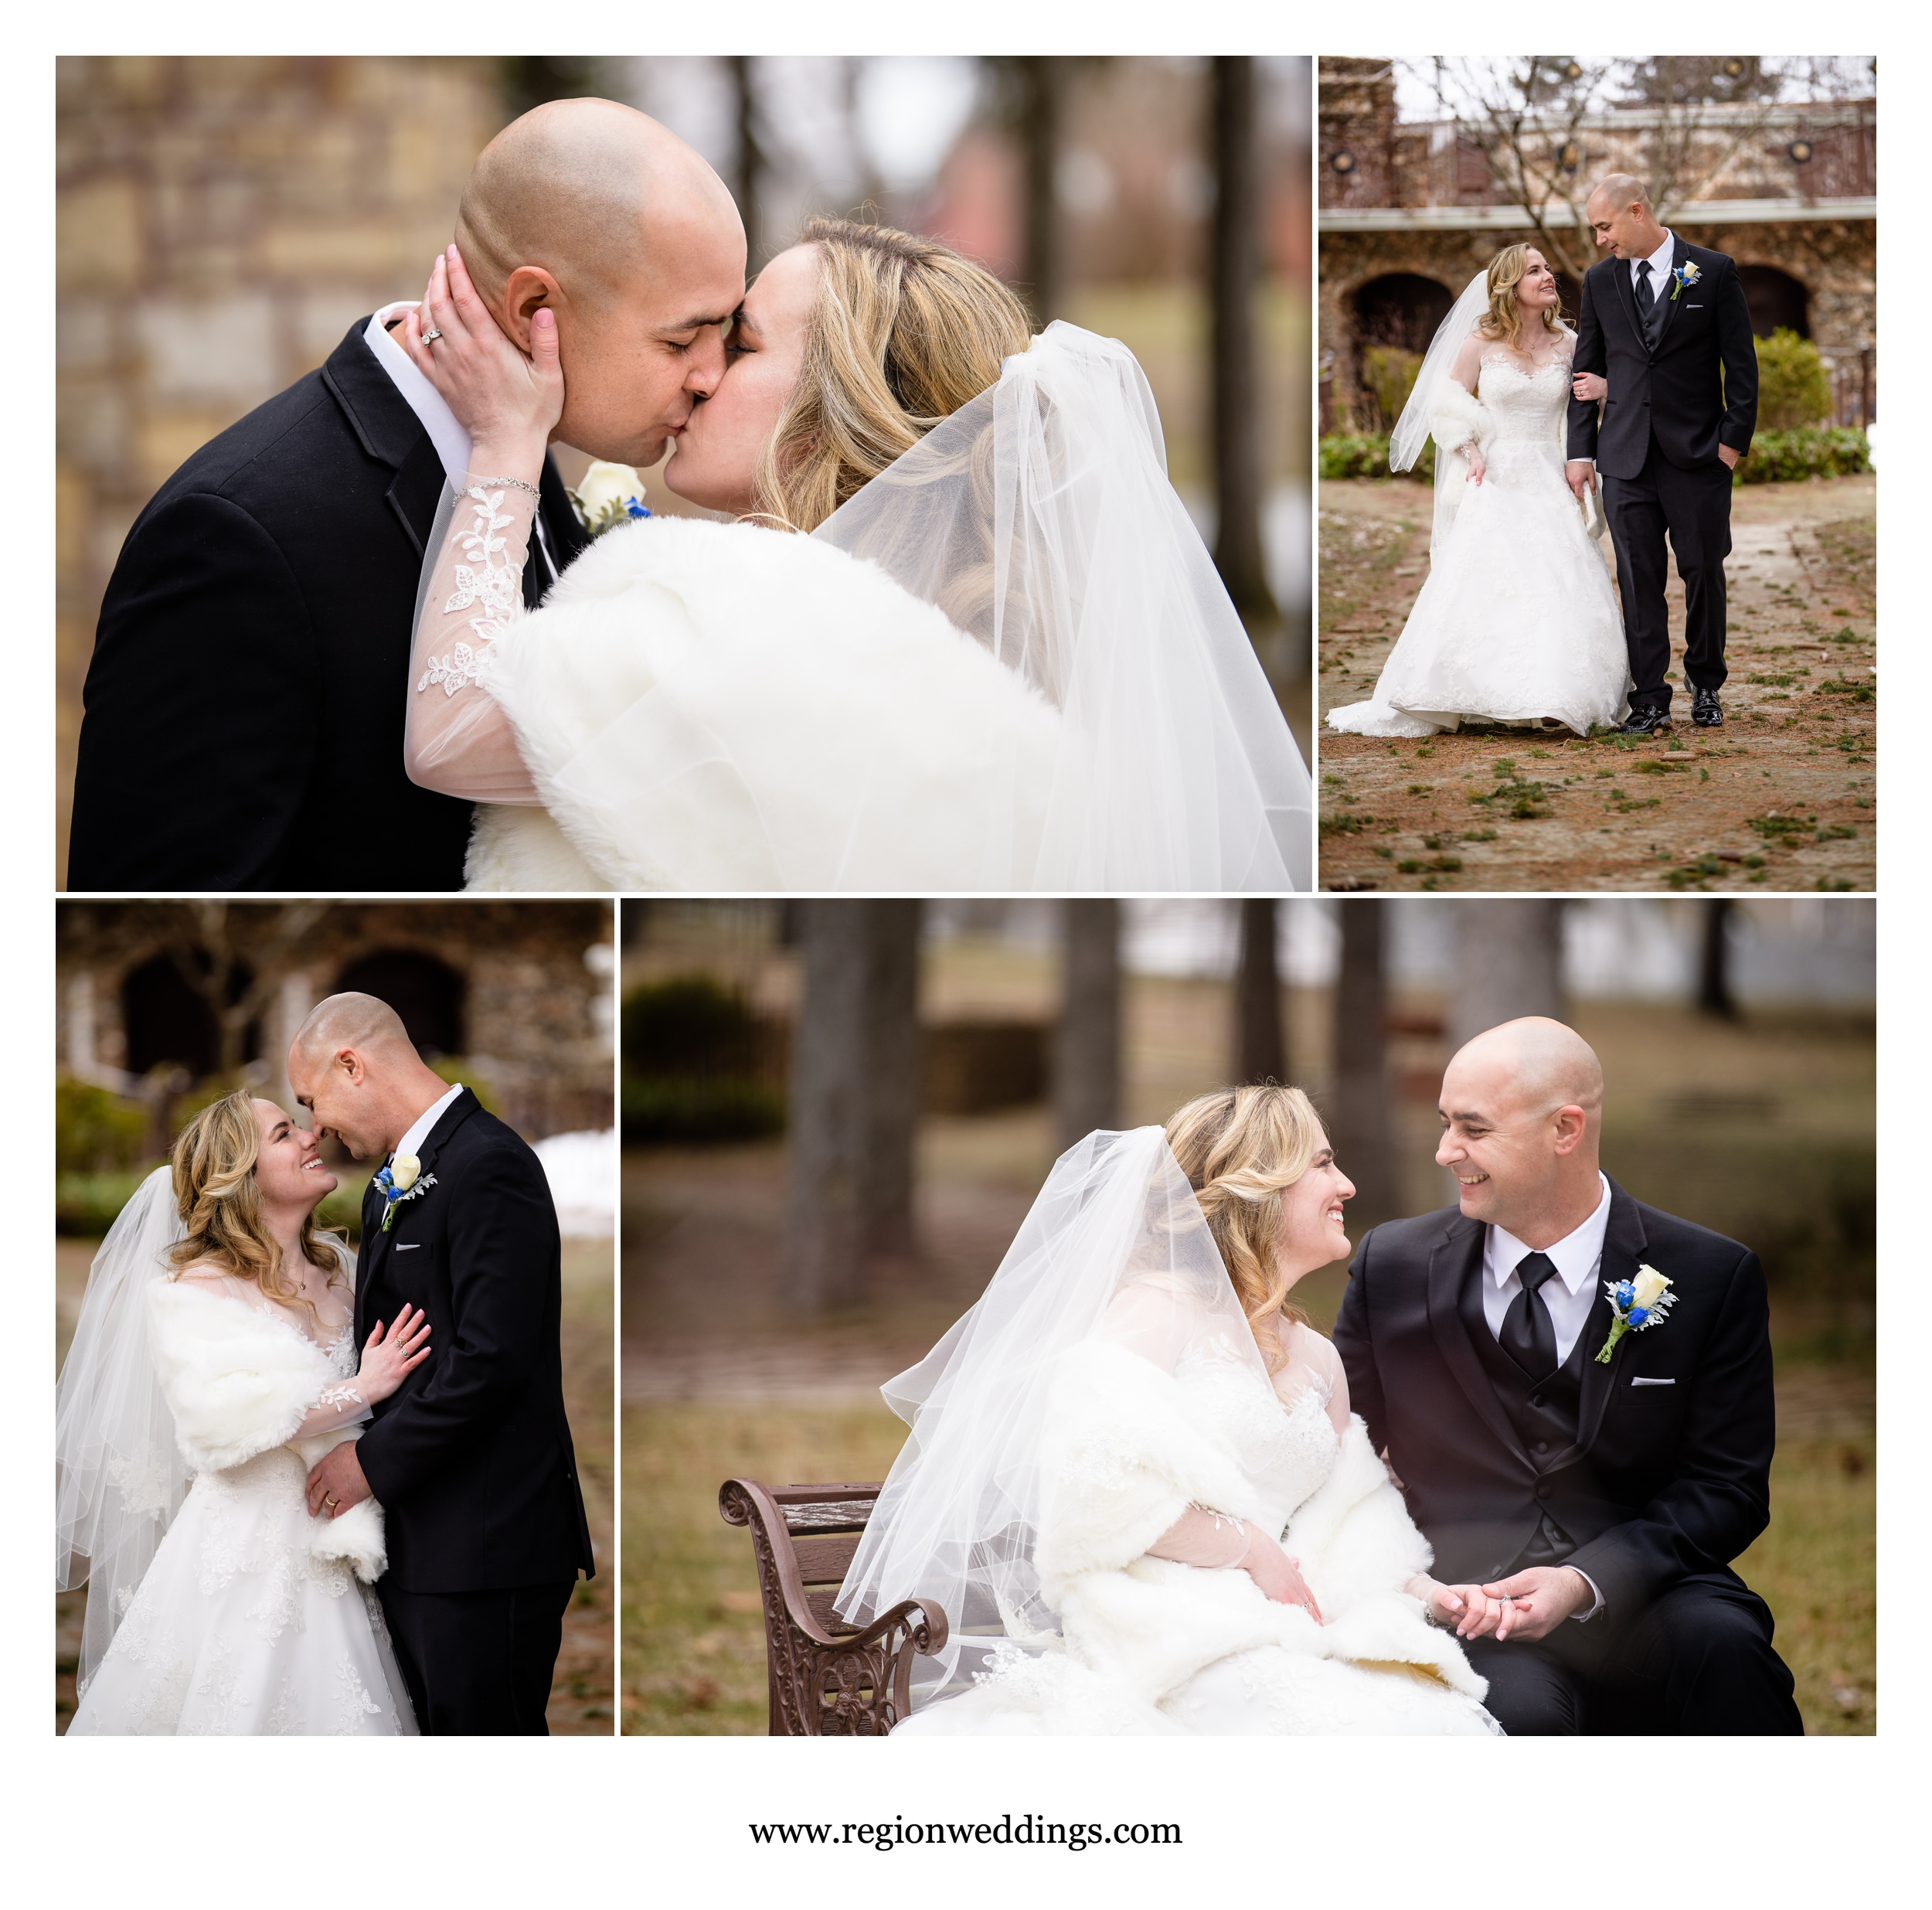 Winter bride and groom wedding pictures at Carmelite Shrine.